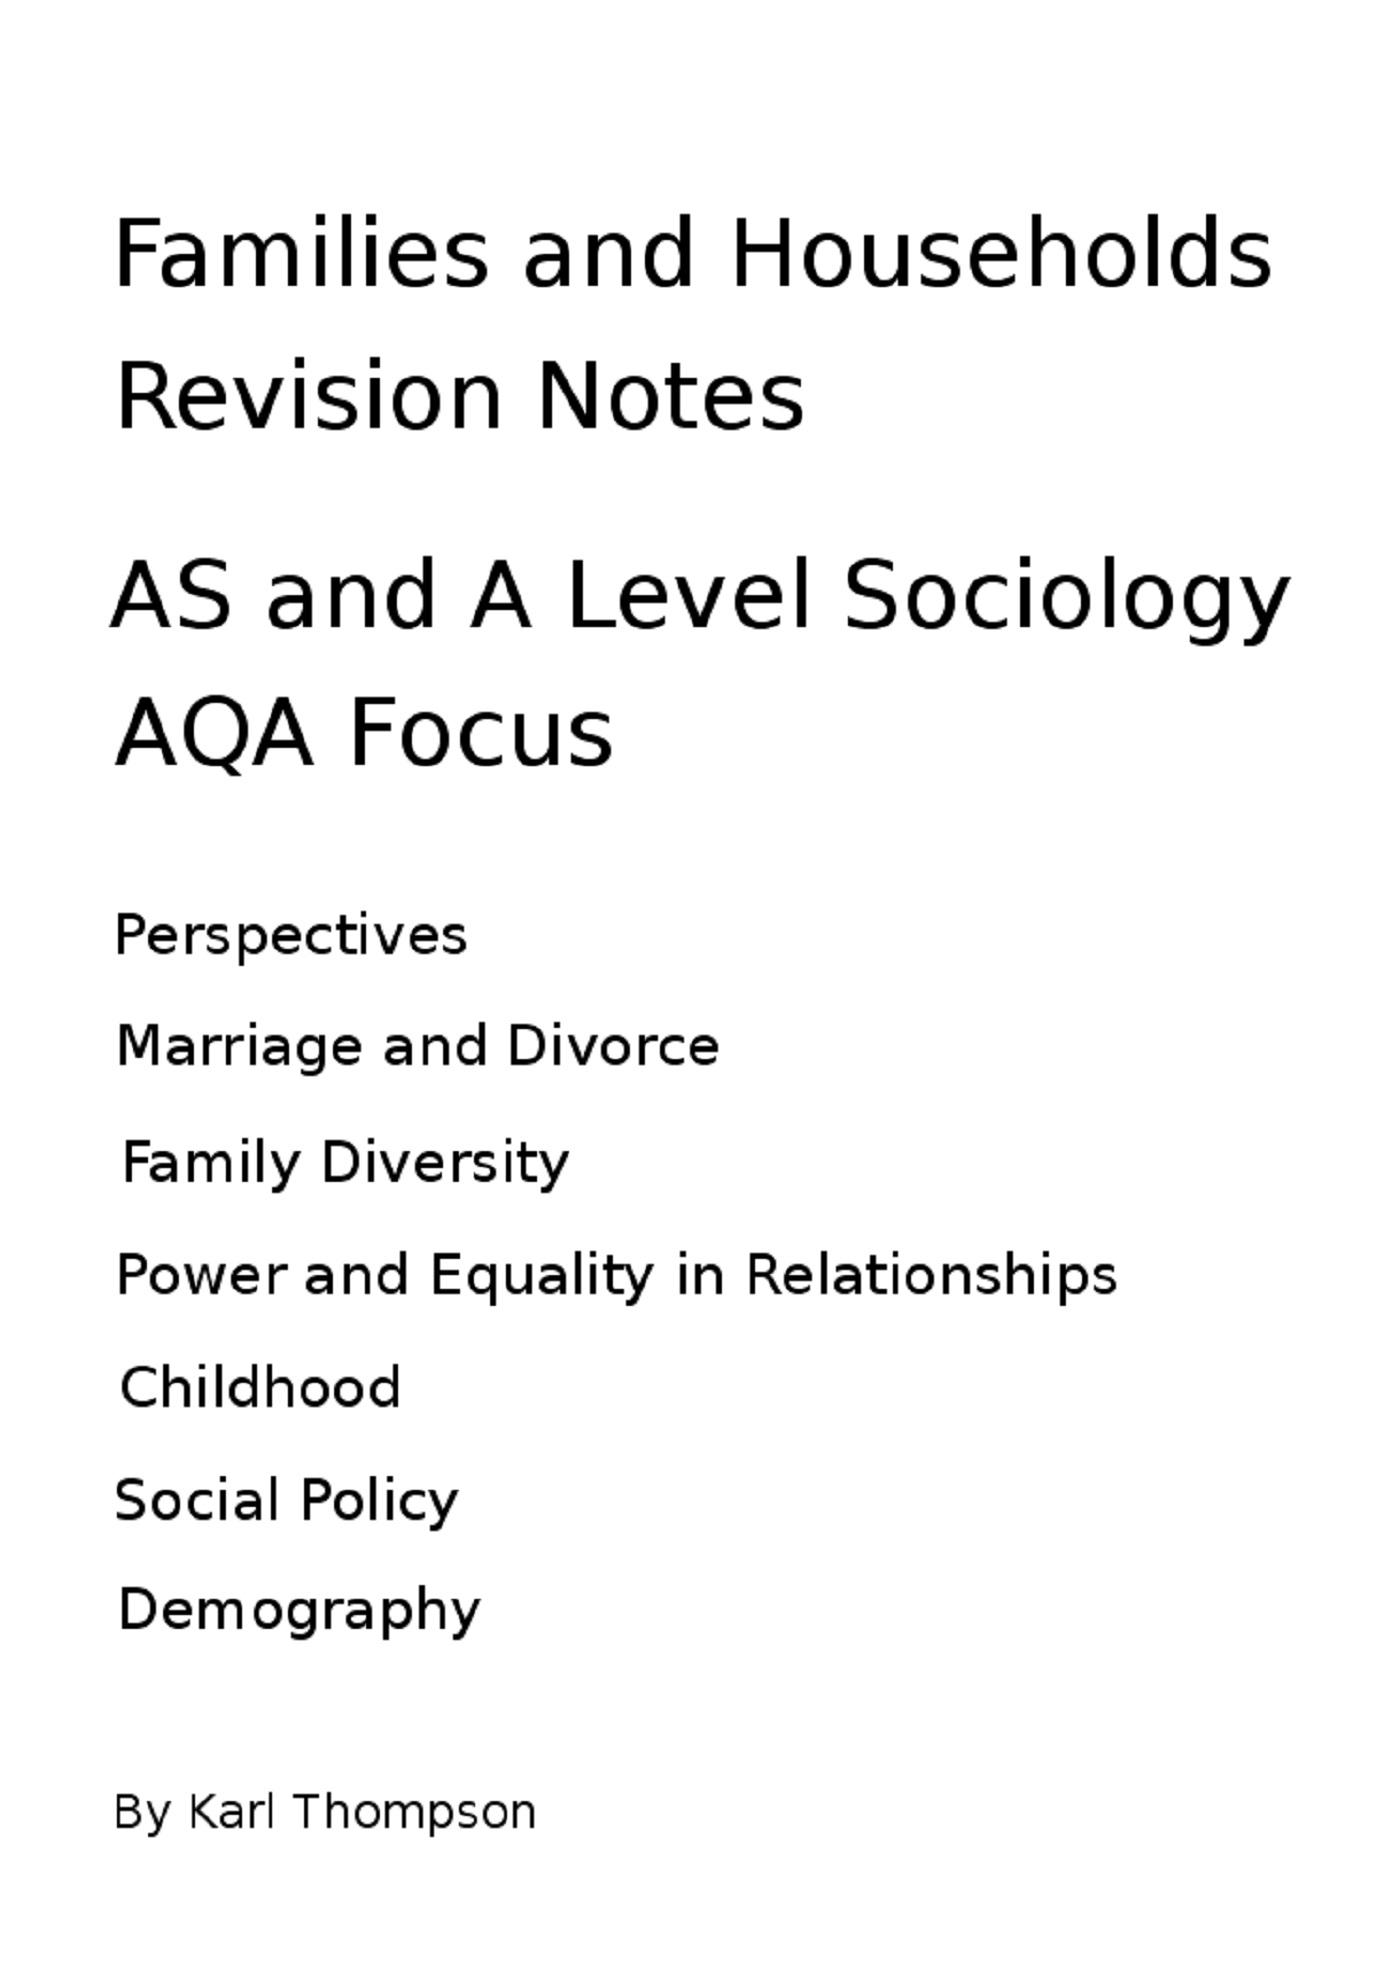 family diversity essay the new right view of the family  the new right view of the family revisesociology